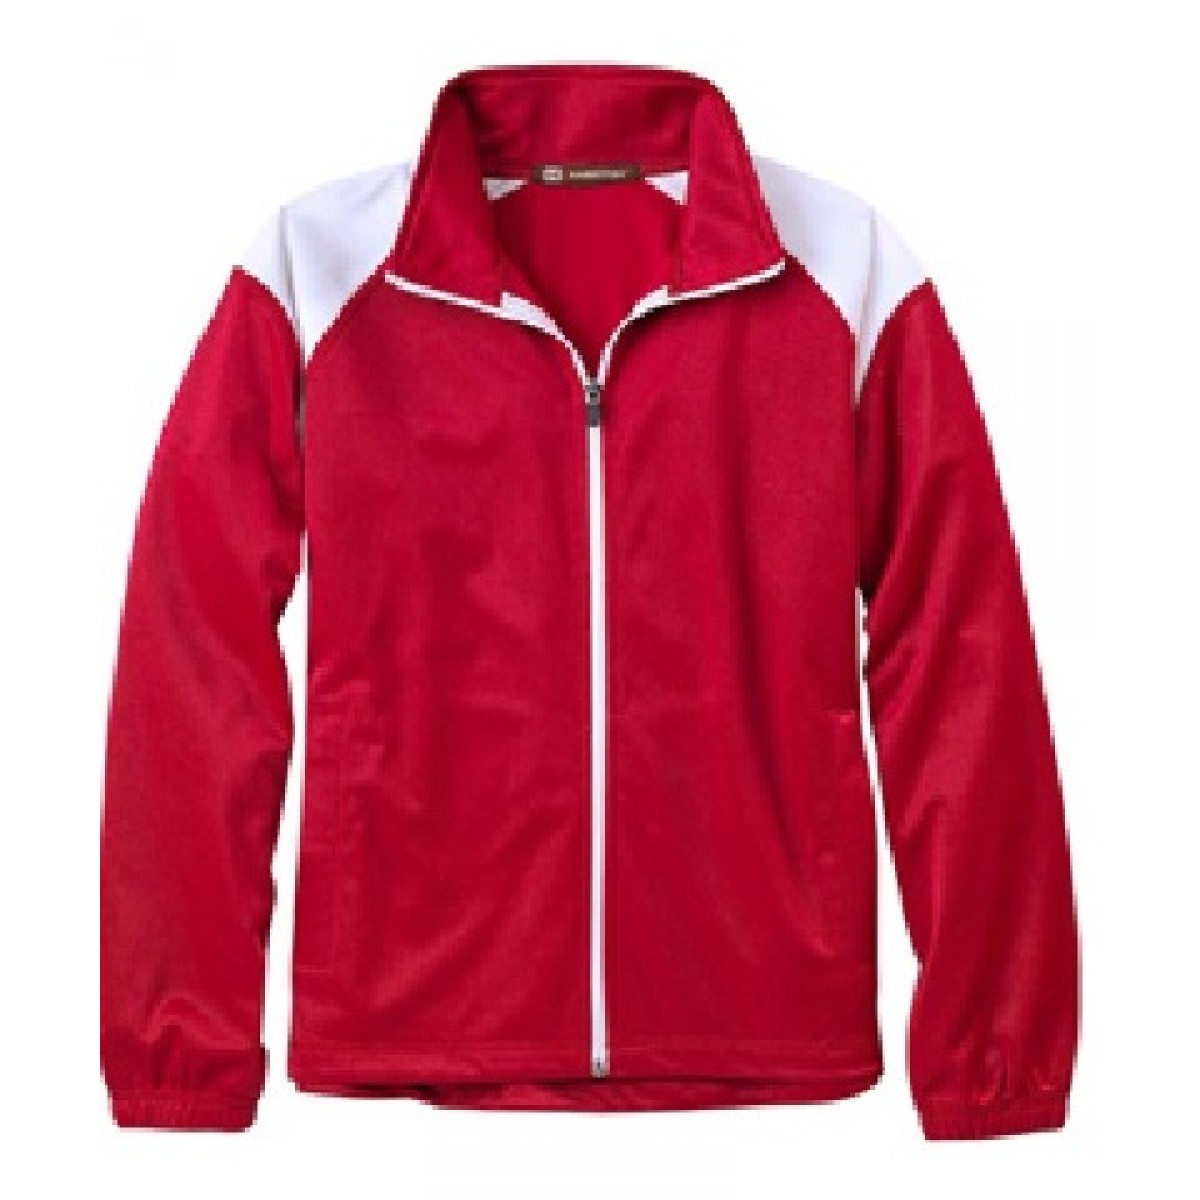 Embroidered Red Tricot Track Jacket-Red-2XL